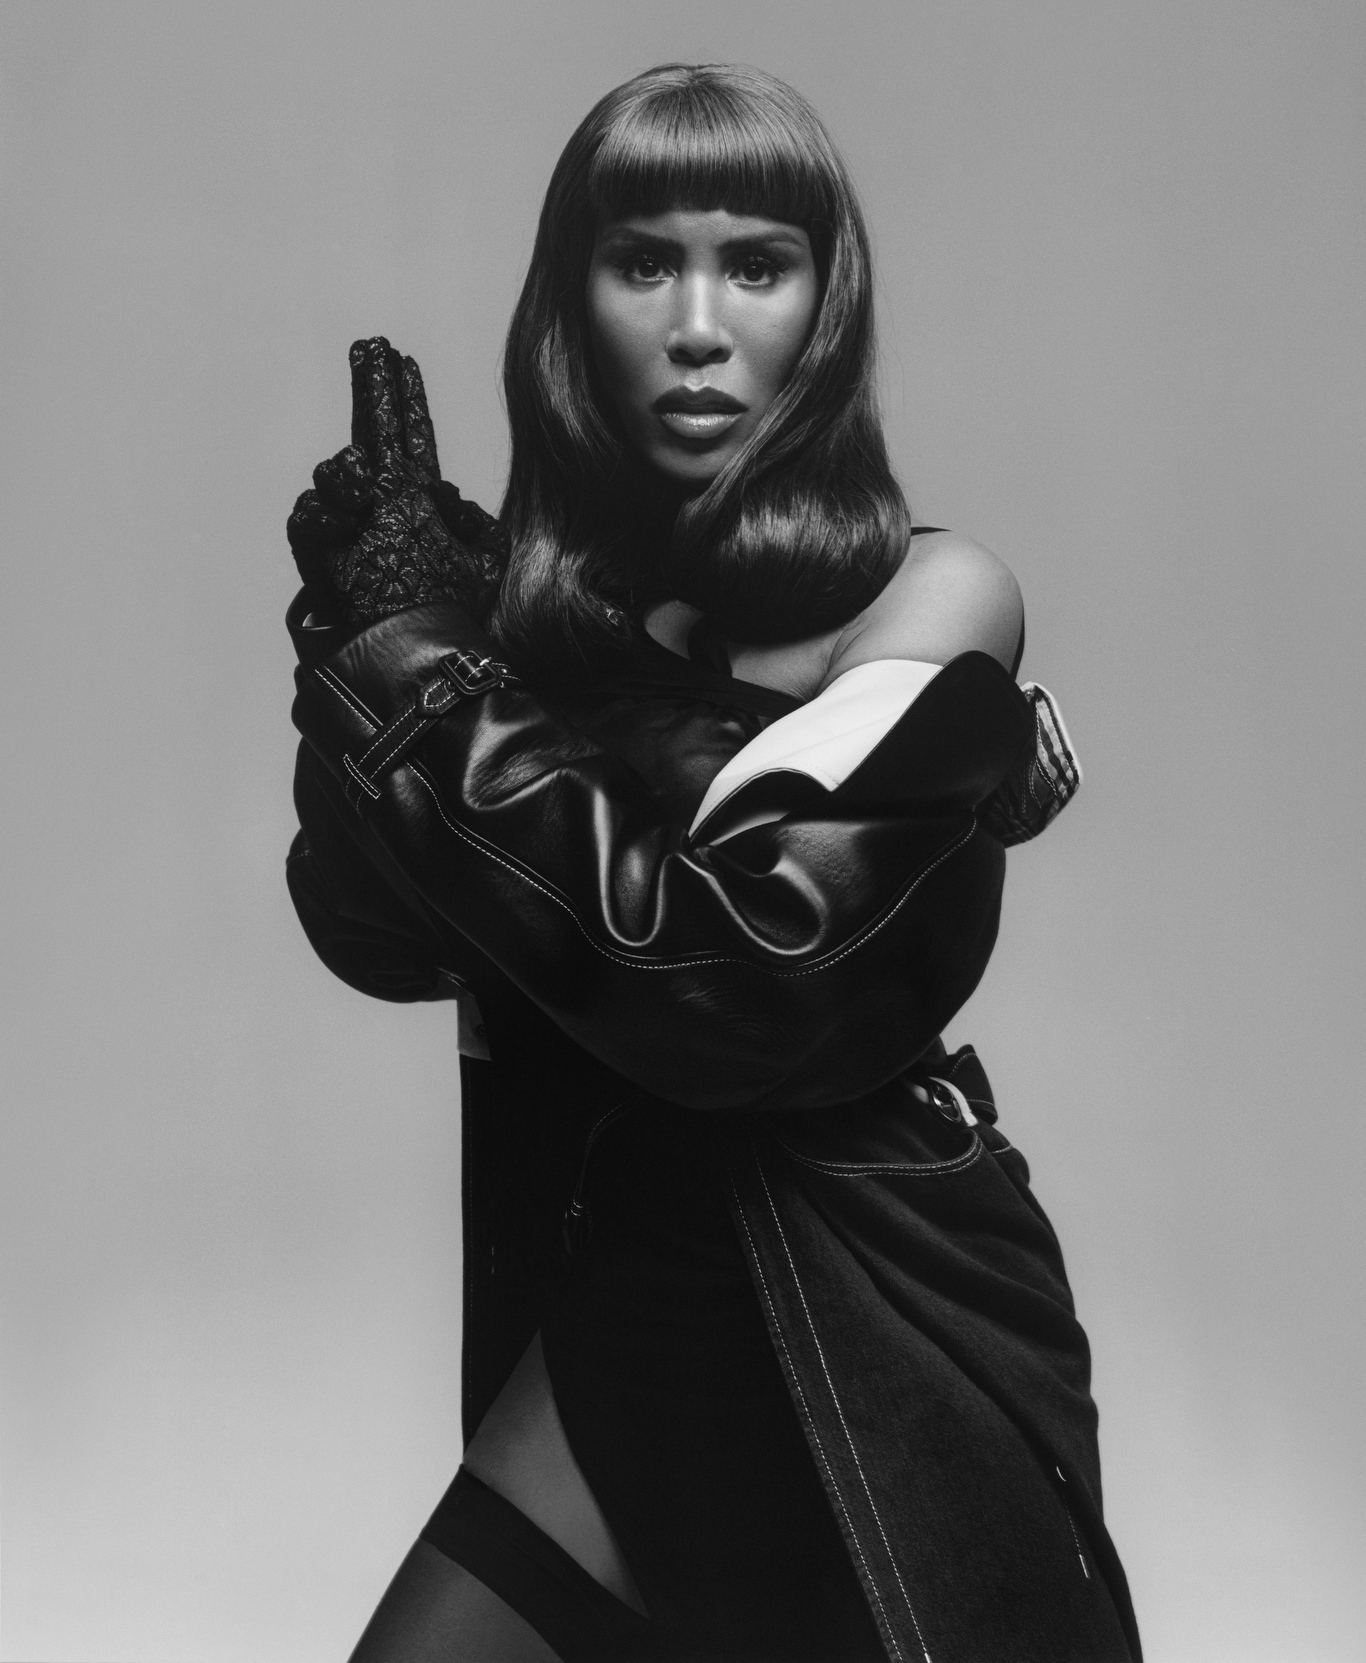 CR Fashion Book's Special Guest Editor, Honey Dijon shot by Louie Banks for CR Fashion Book